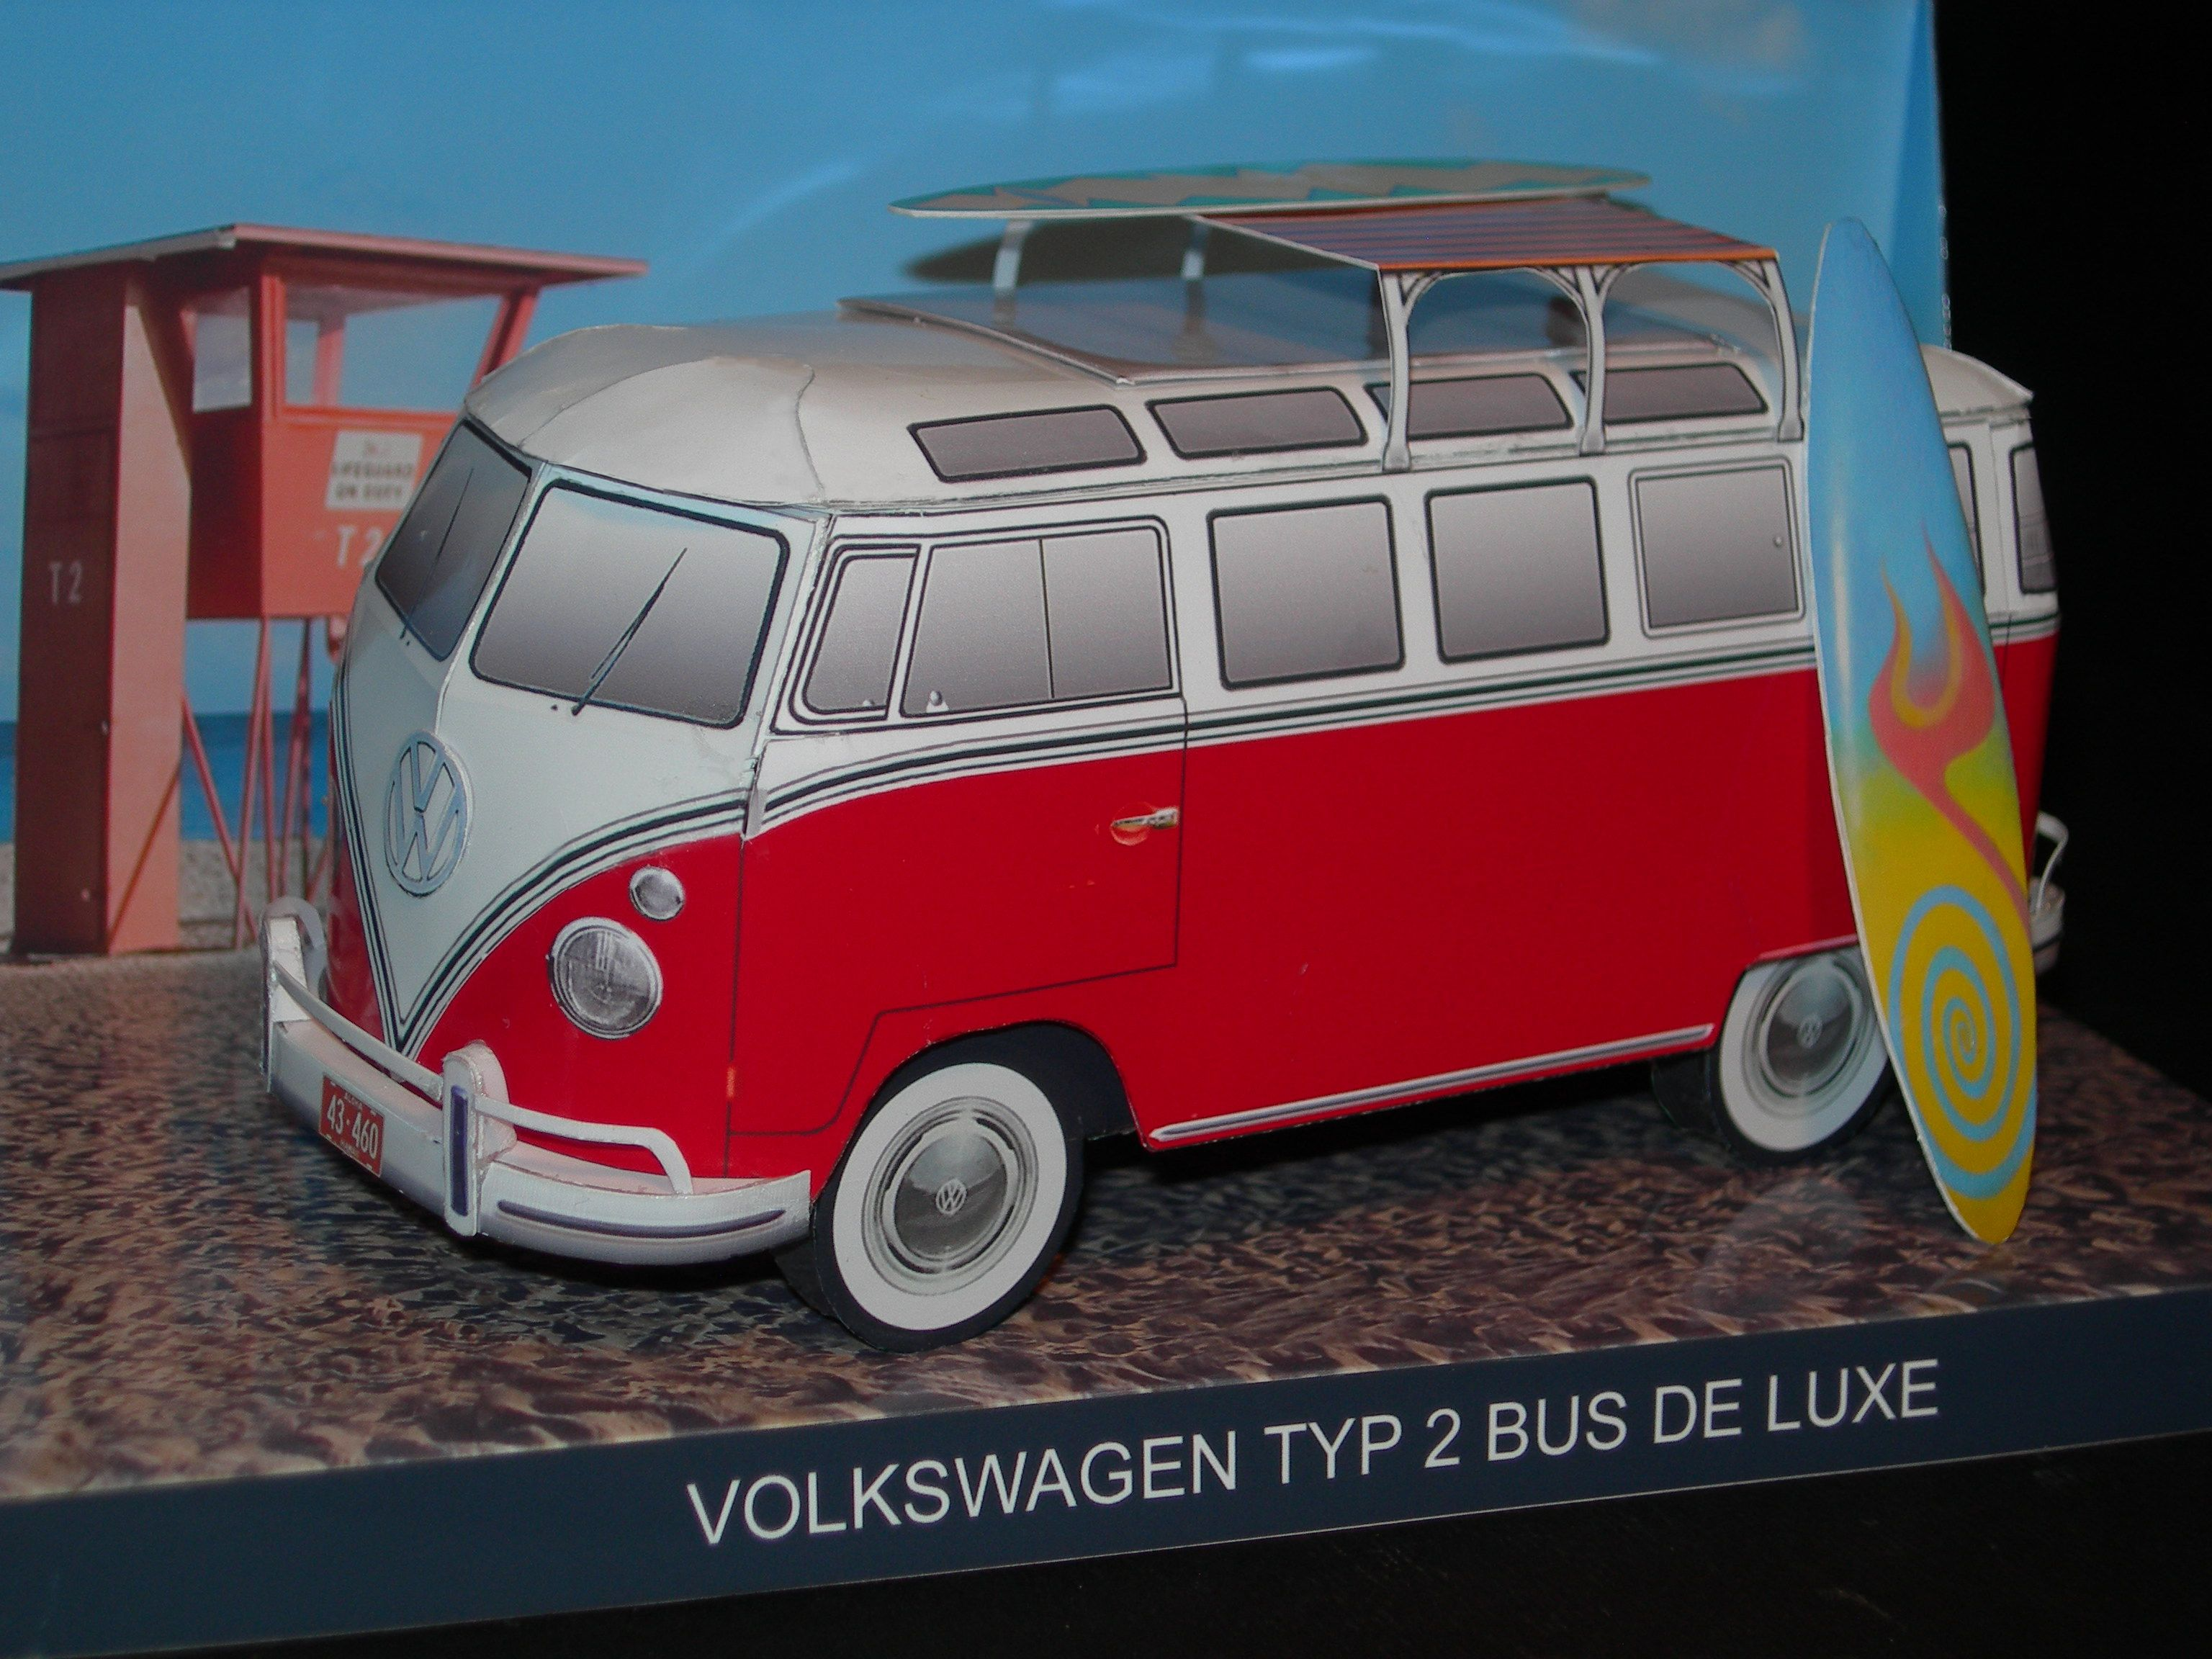 Vw Bus De Luxe Samba Bus 1 Paper Models Paper Model Car Car Papercraft